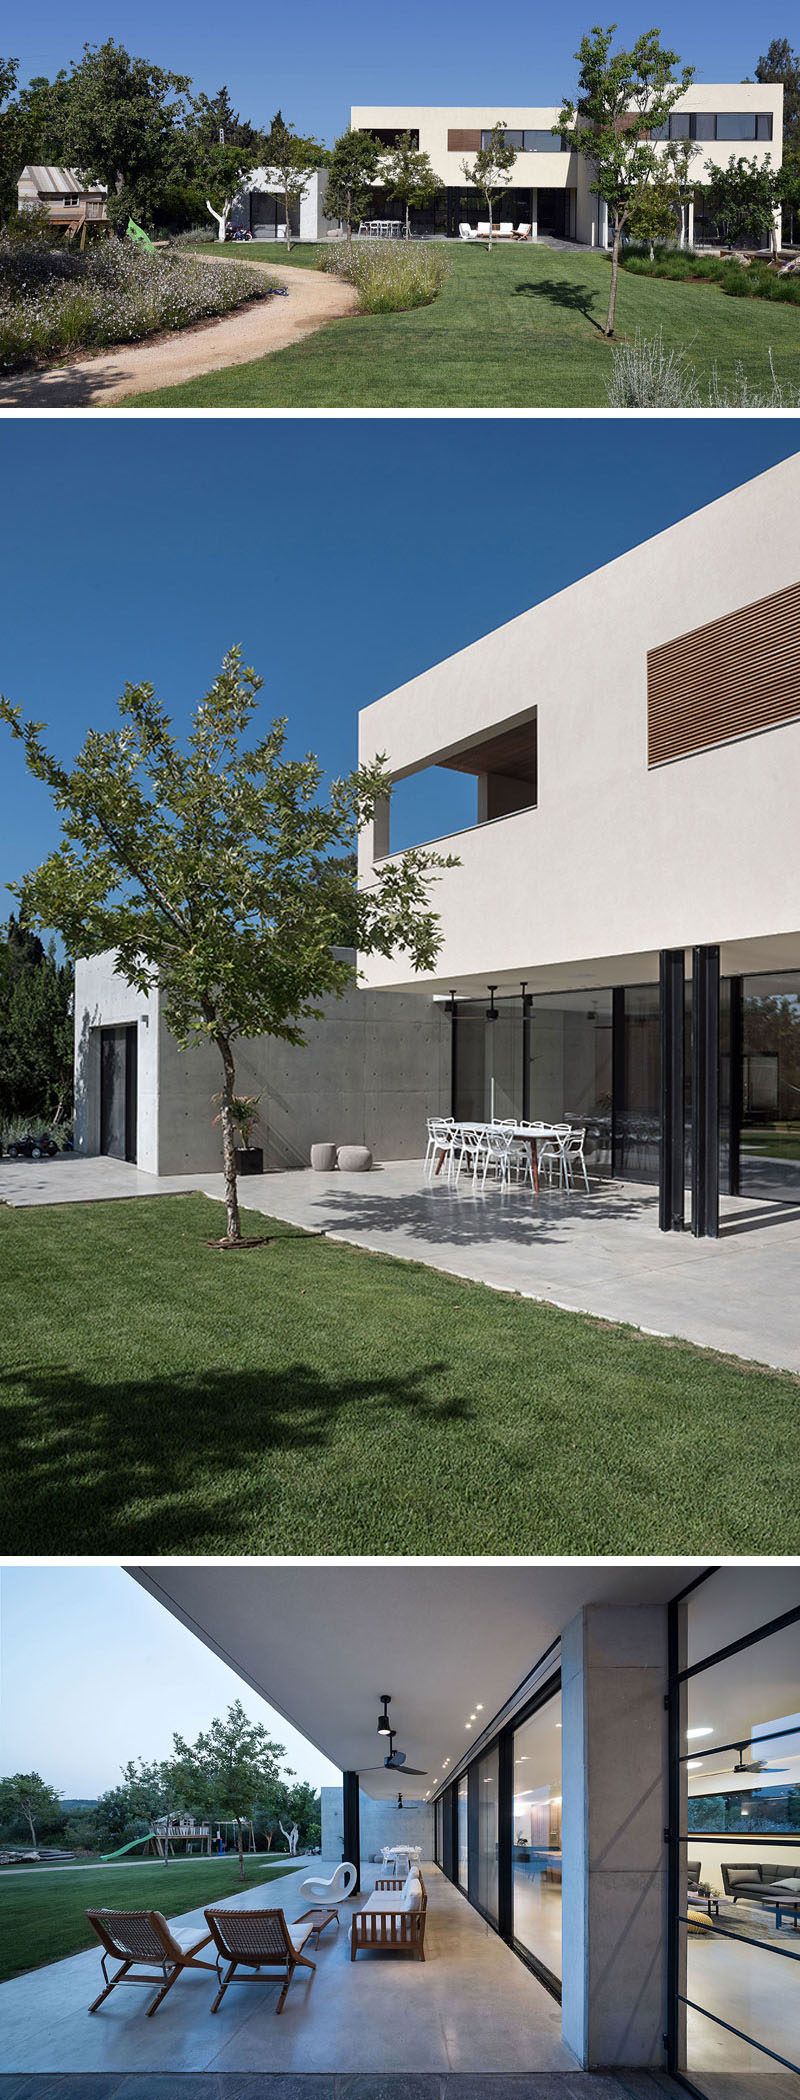 This modern house has a large backyard and a partially covered patio area for outdoor dining and lounging.